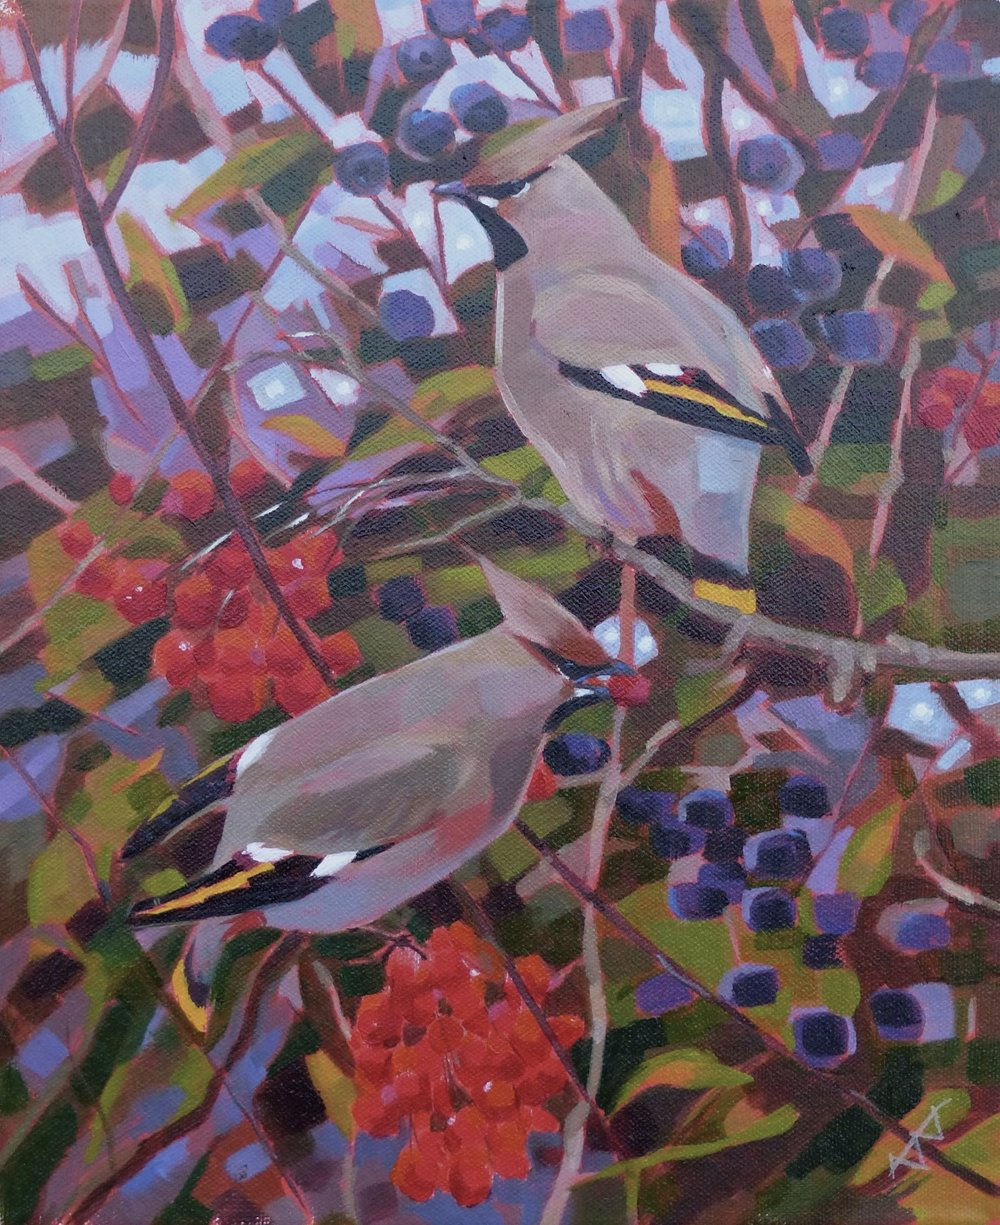 Waxwings with Guelder Rose and Blackthorn acrylic on canvas £695